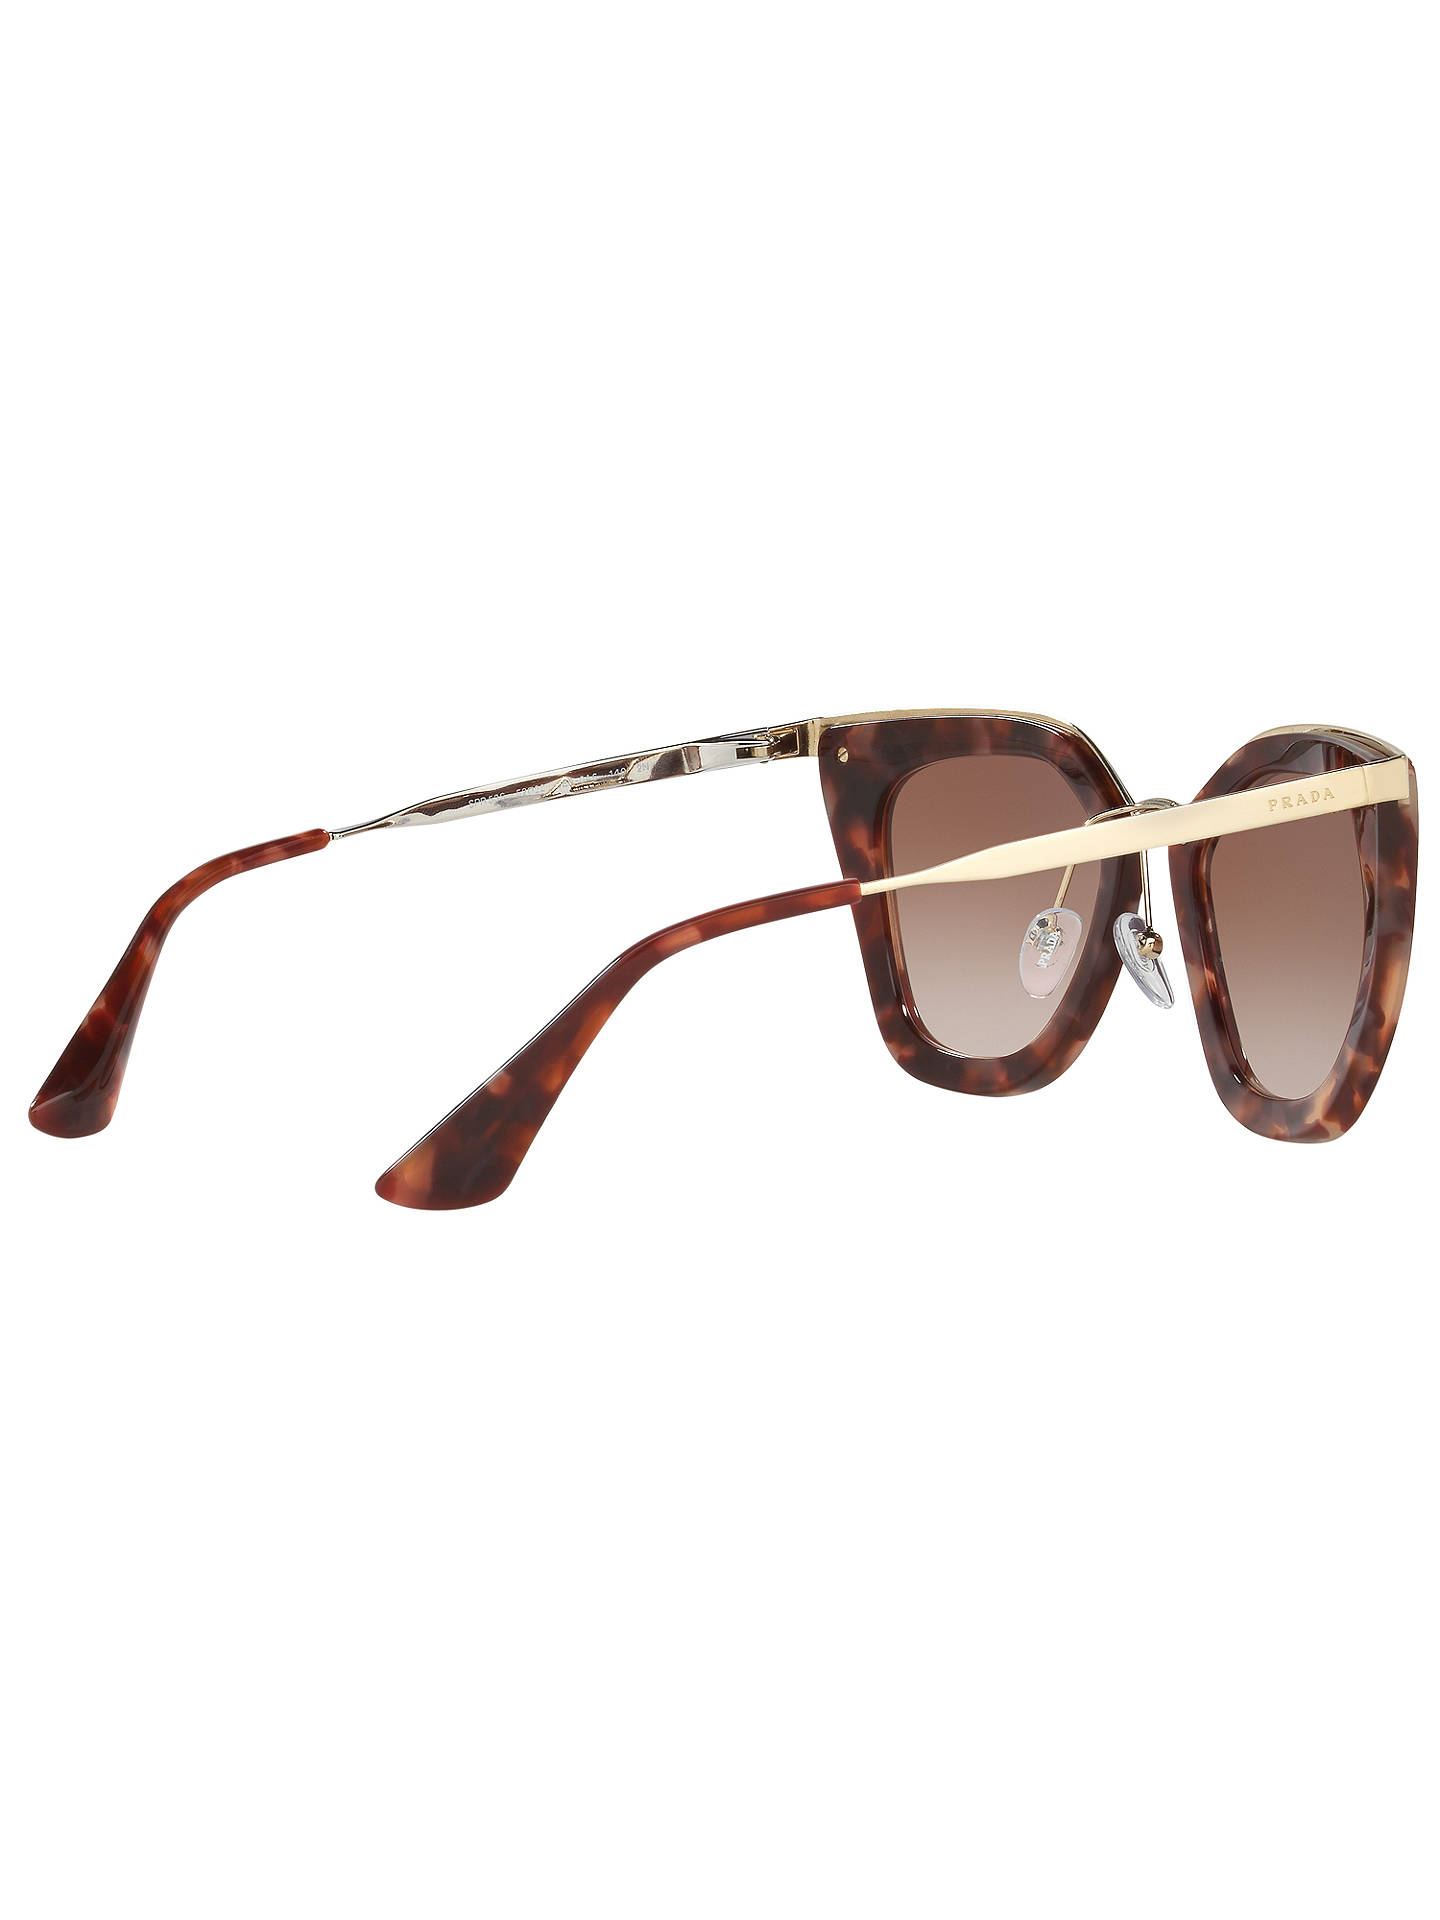 0e3a948658f ... Buy Prada SPR53S Cat s Eye Sunglasses